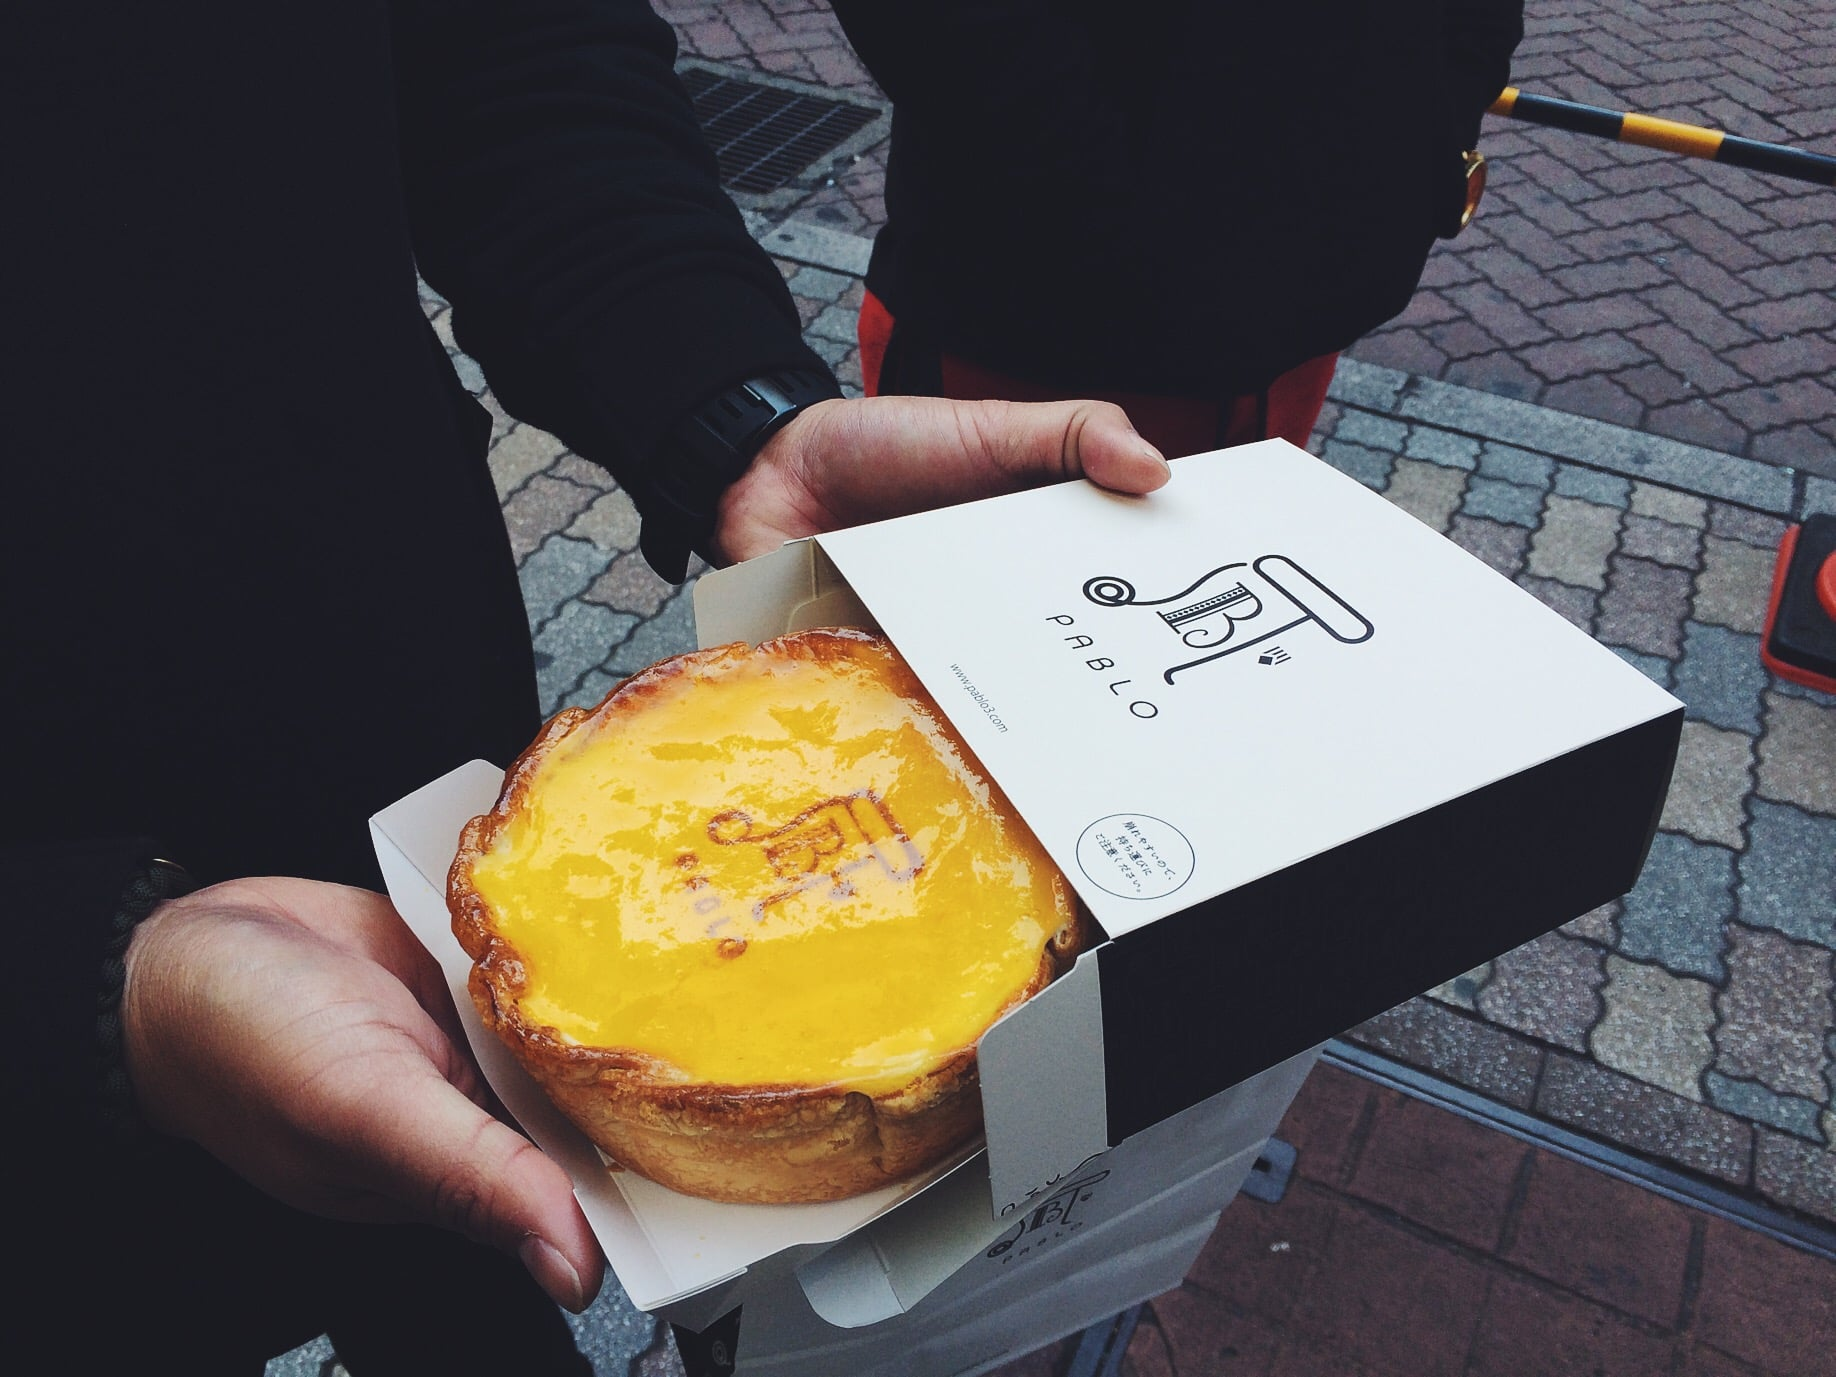 What ever this is, this was the shit!! I called it Cheese Pie because its made out of cheese. It wasn't to sweet, it was soft and fluffy, like a giant egg tart but with cheese.